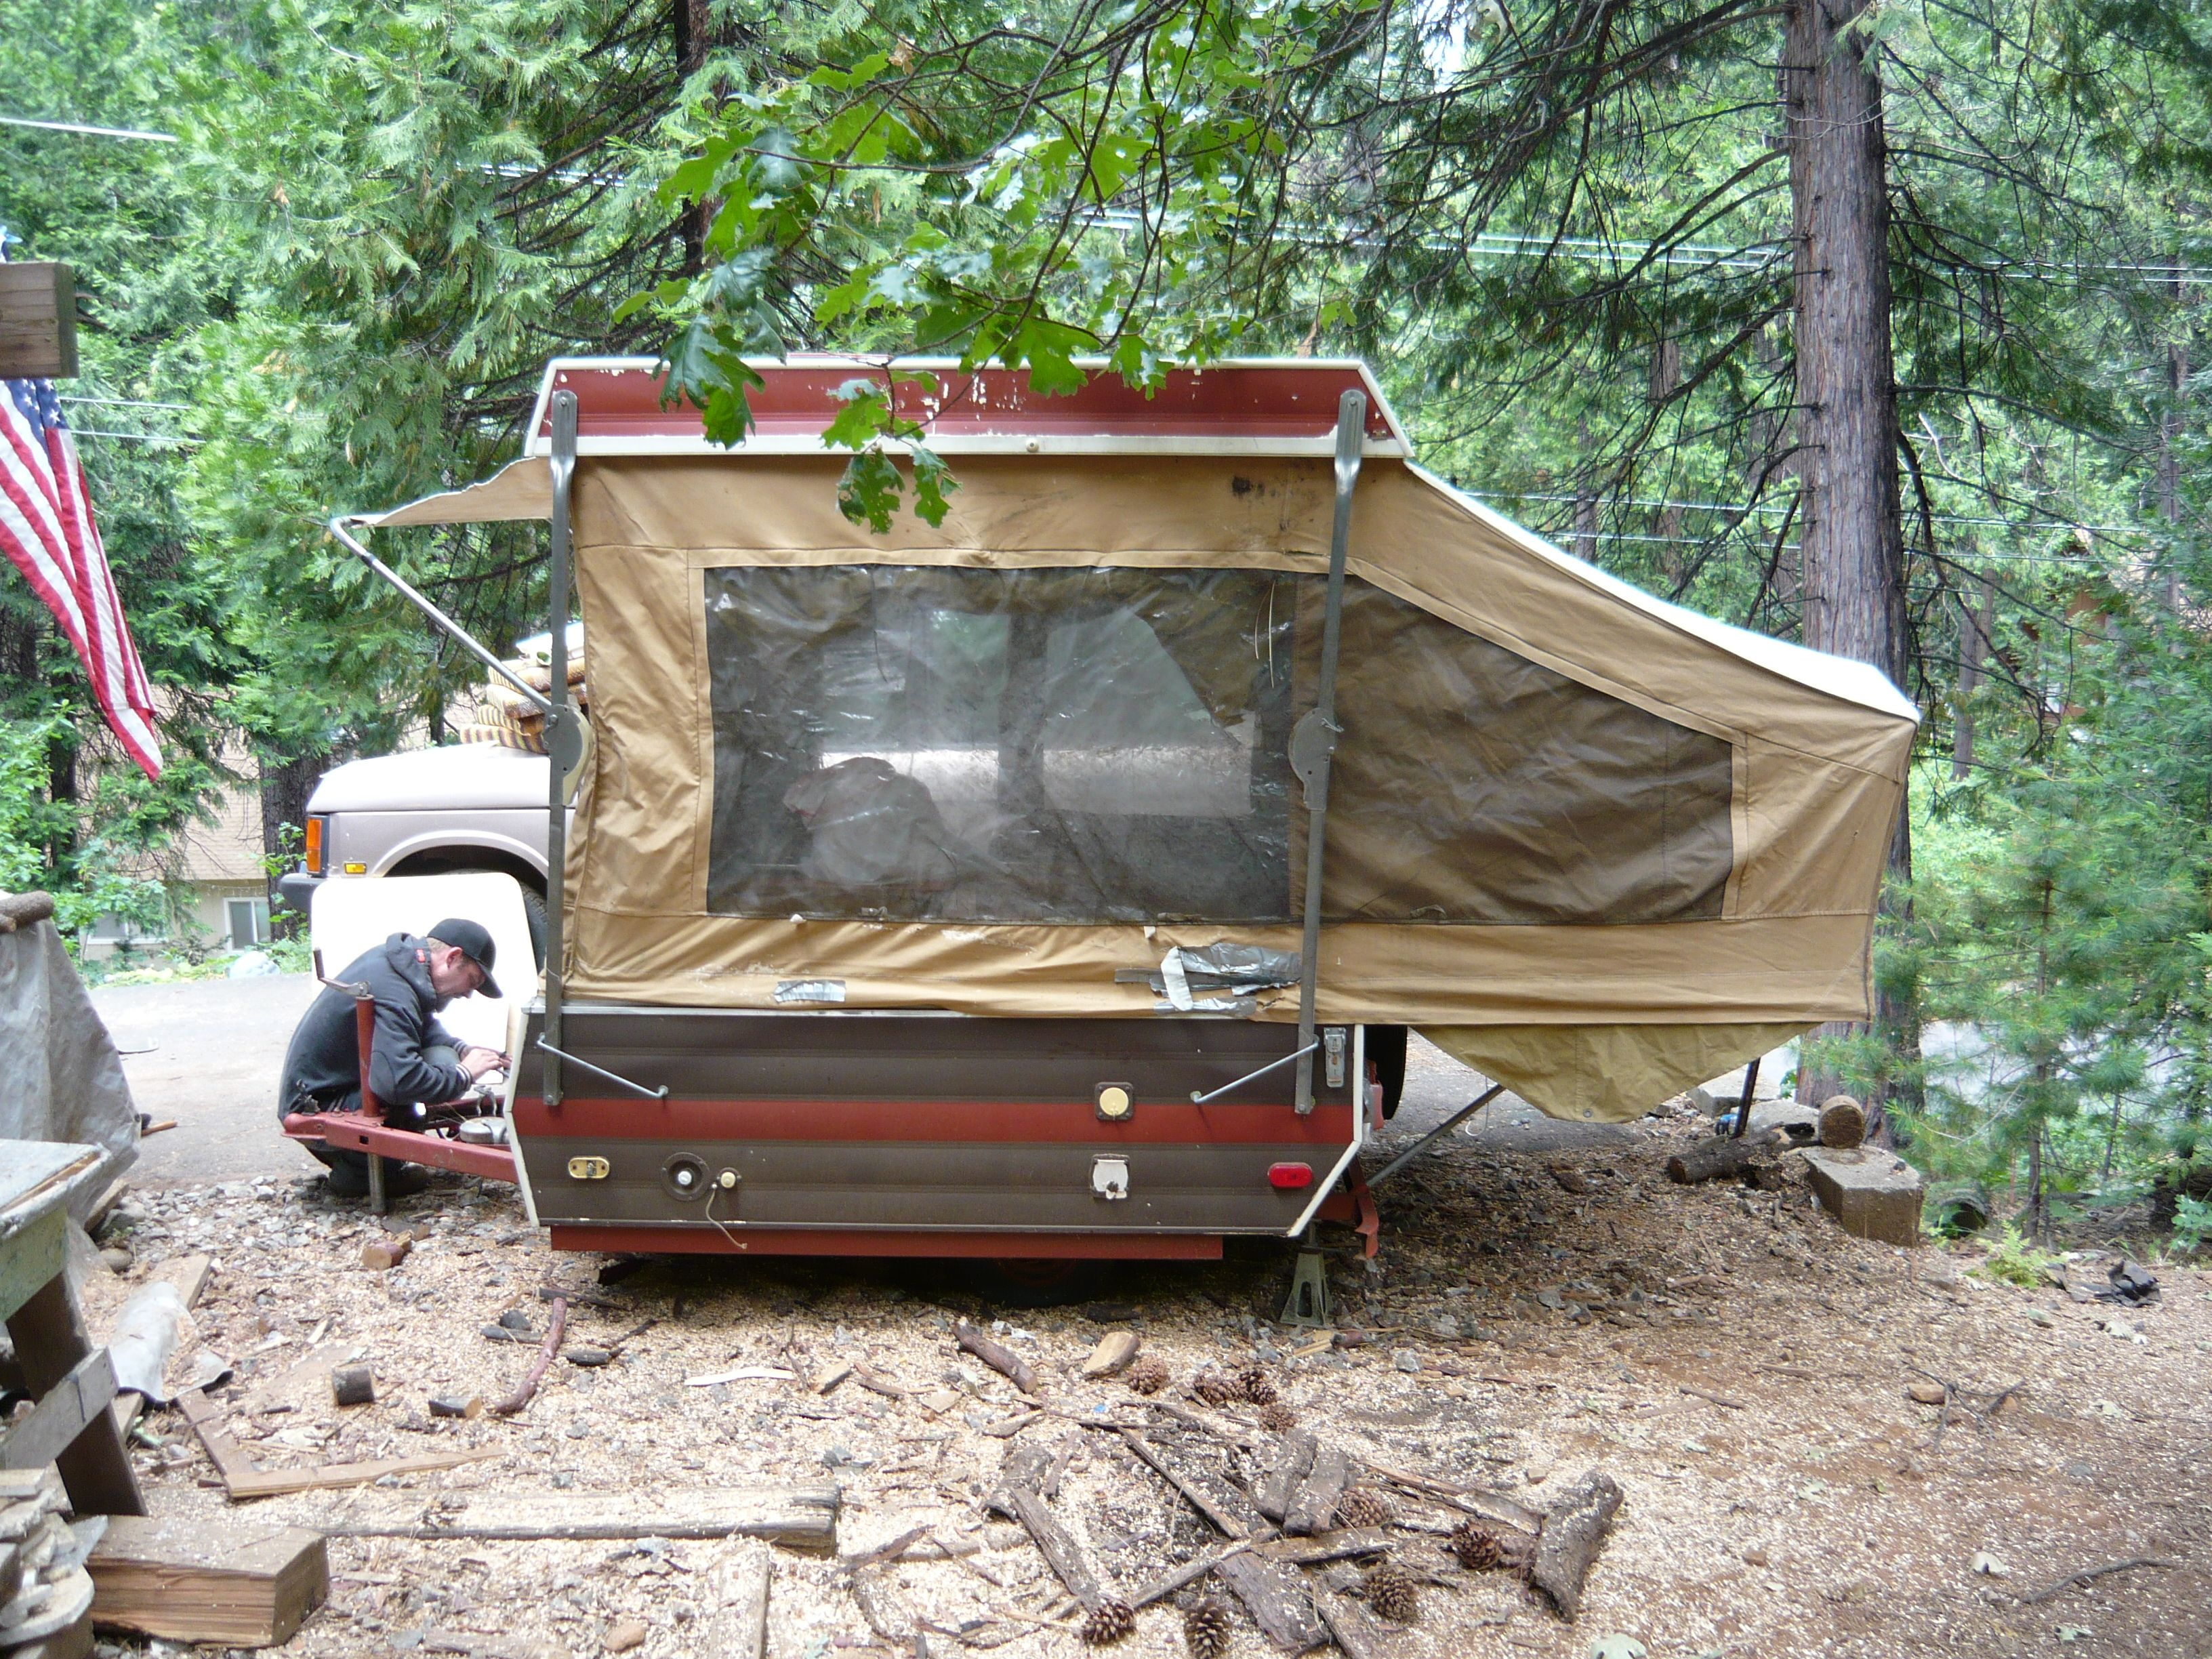 1980 Viking pop up camping trailer - Great trailer for 1 ...